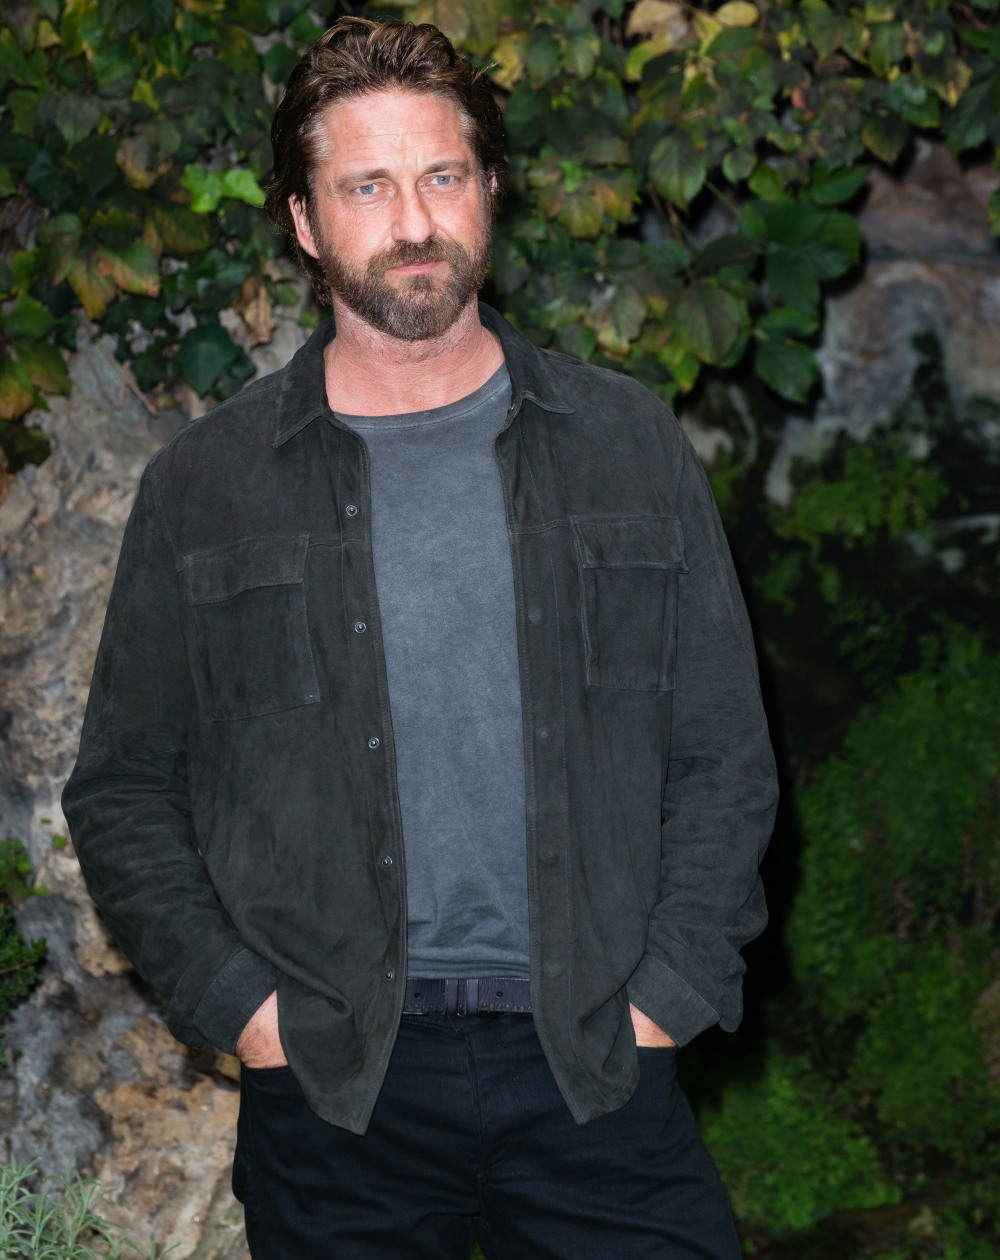 Rome photocall for 'Geostorm'